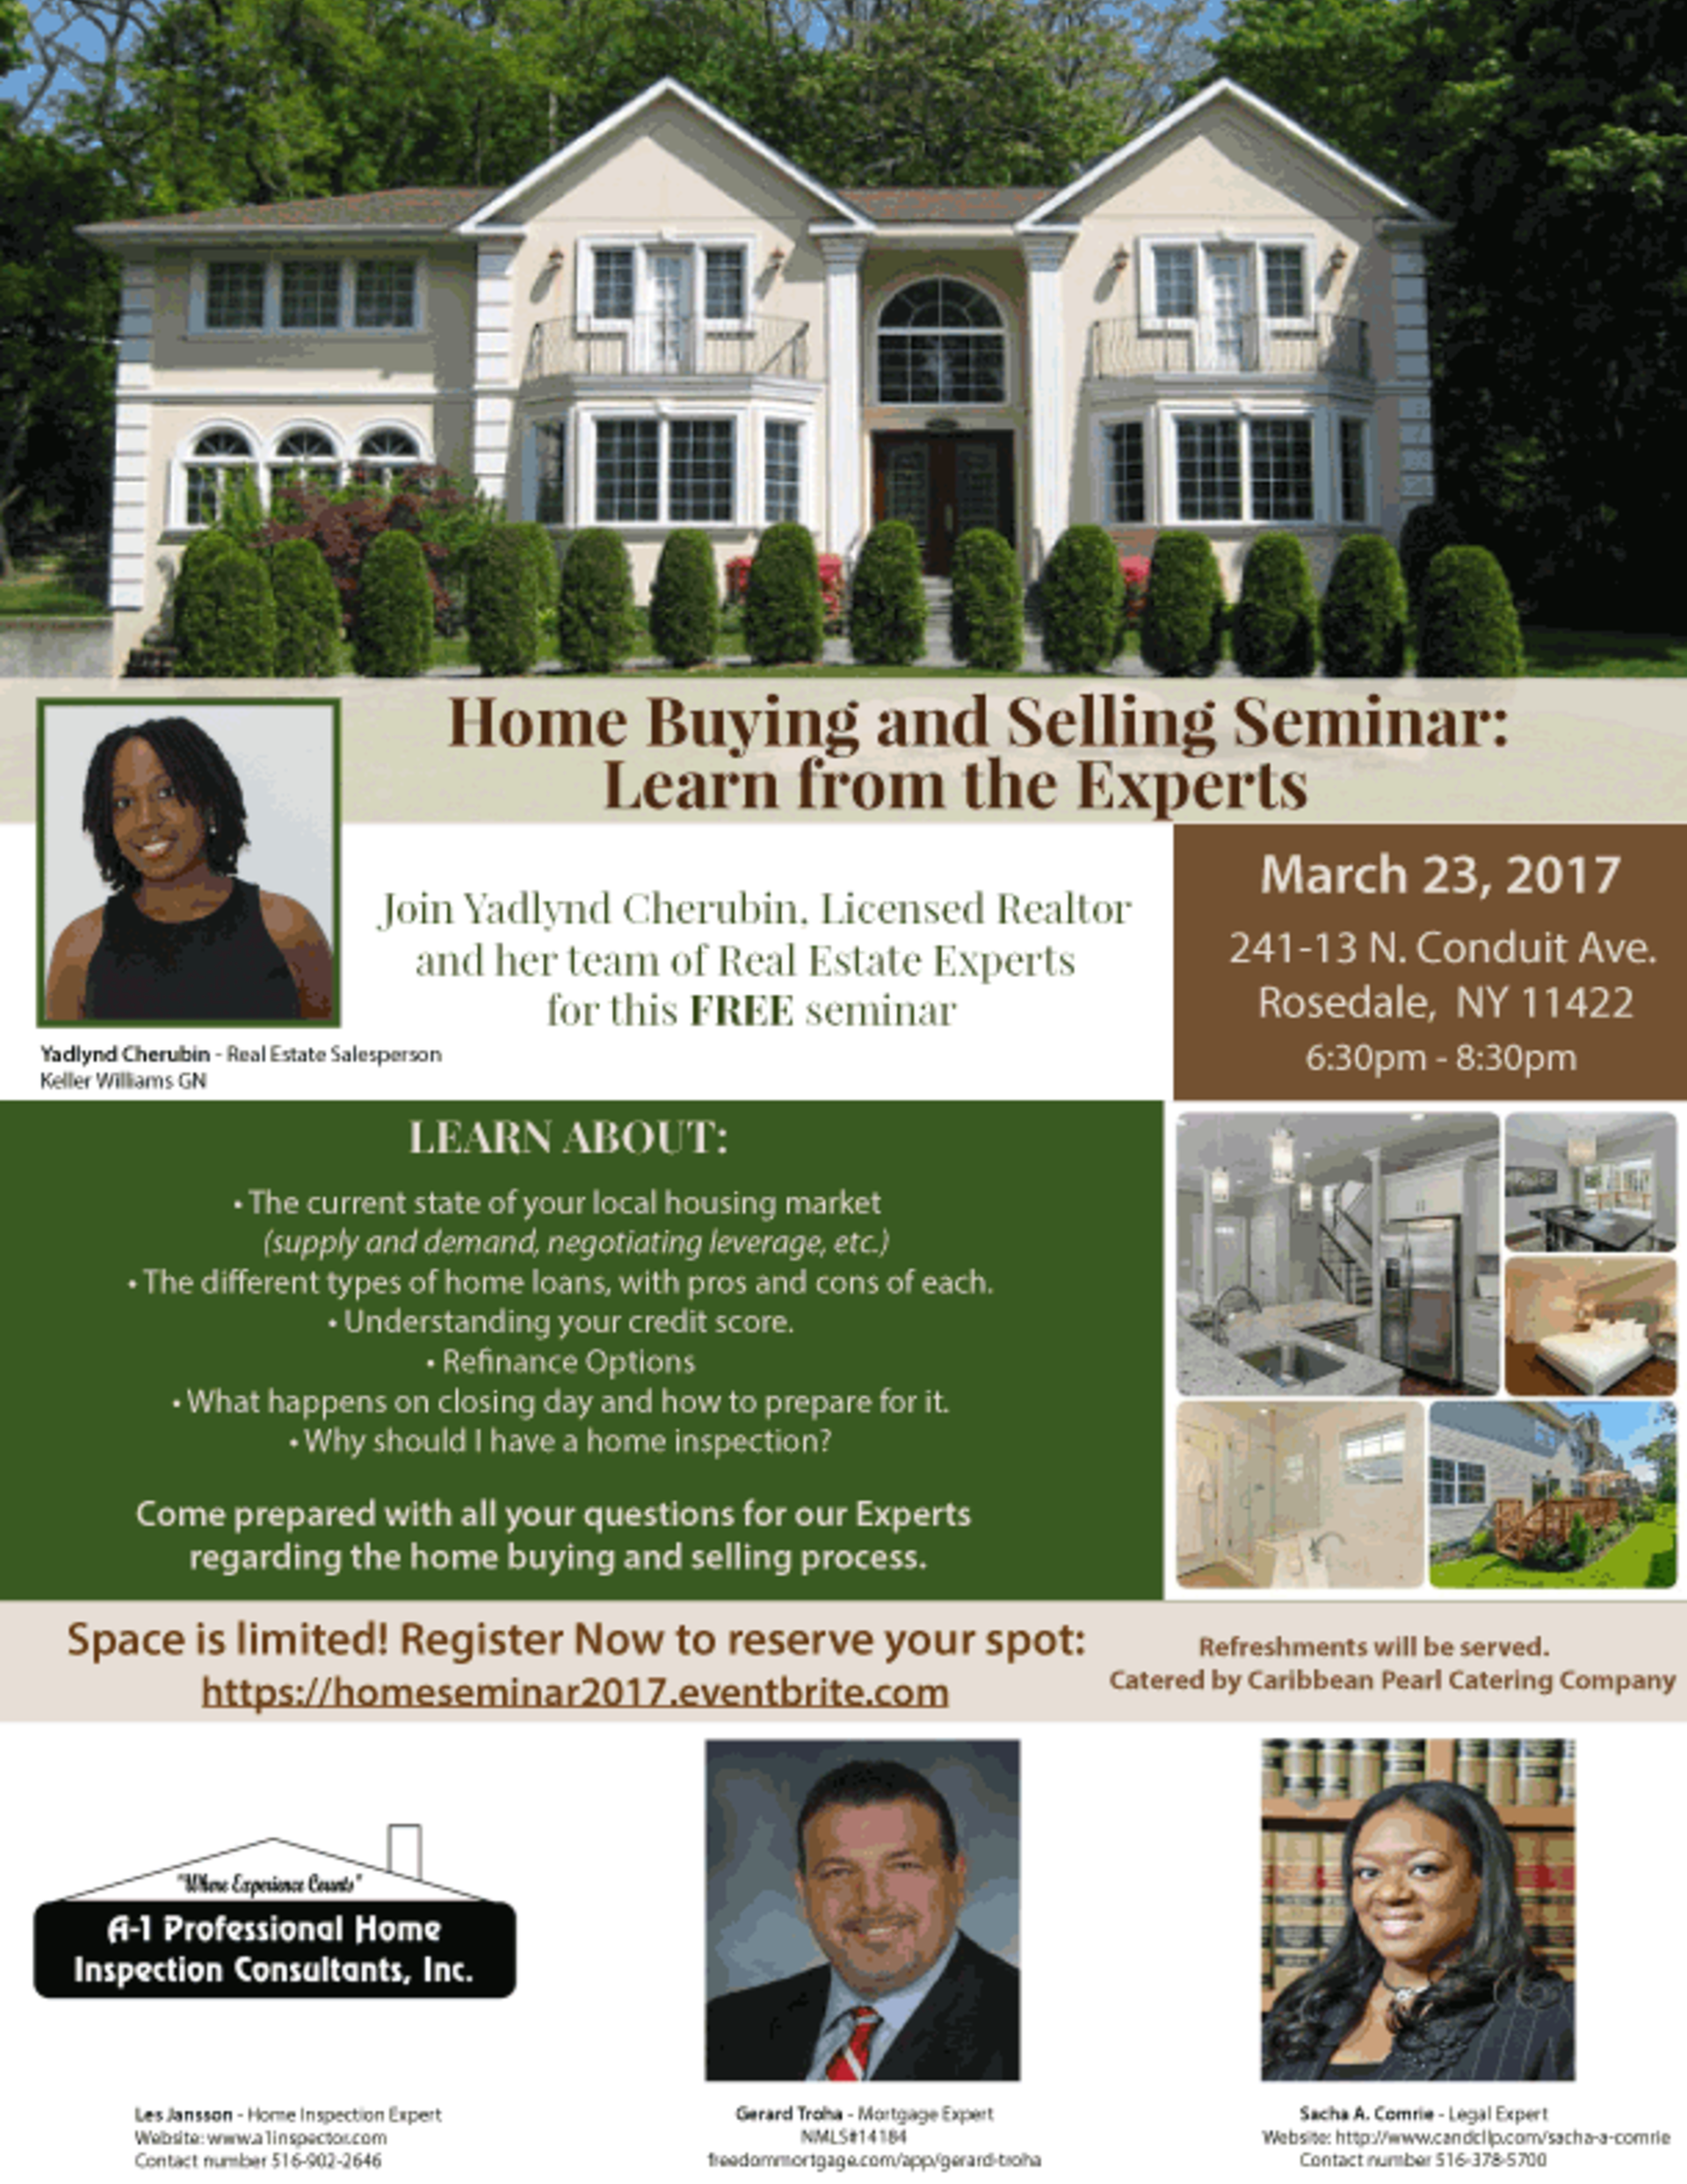 2017 Home Buying and Selling Seminar